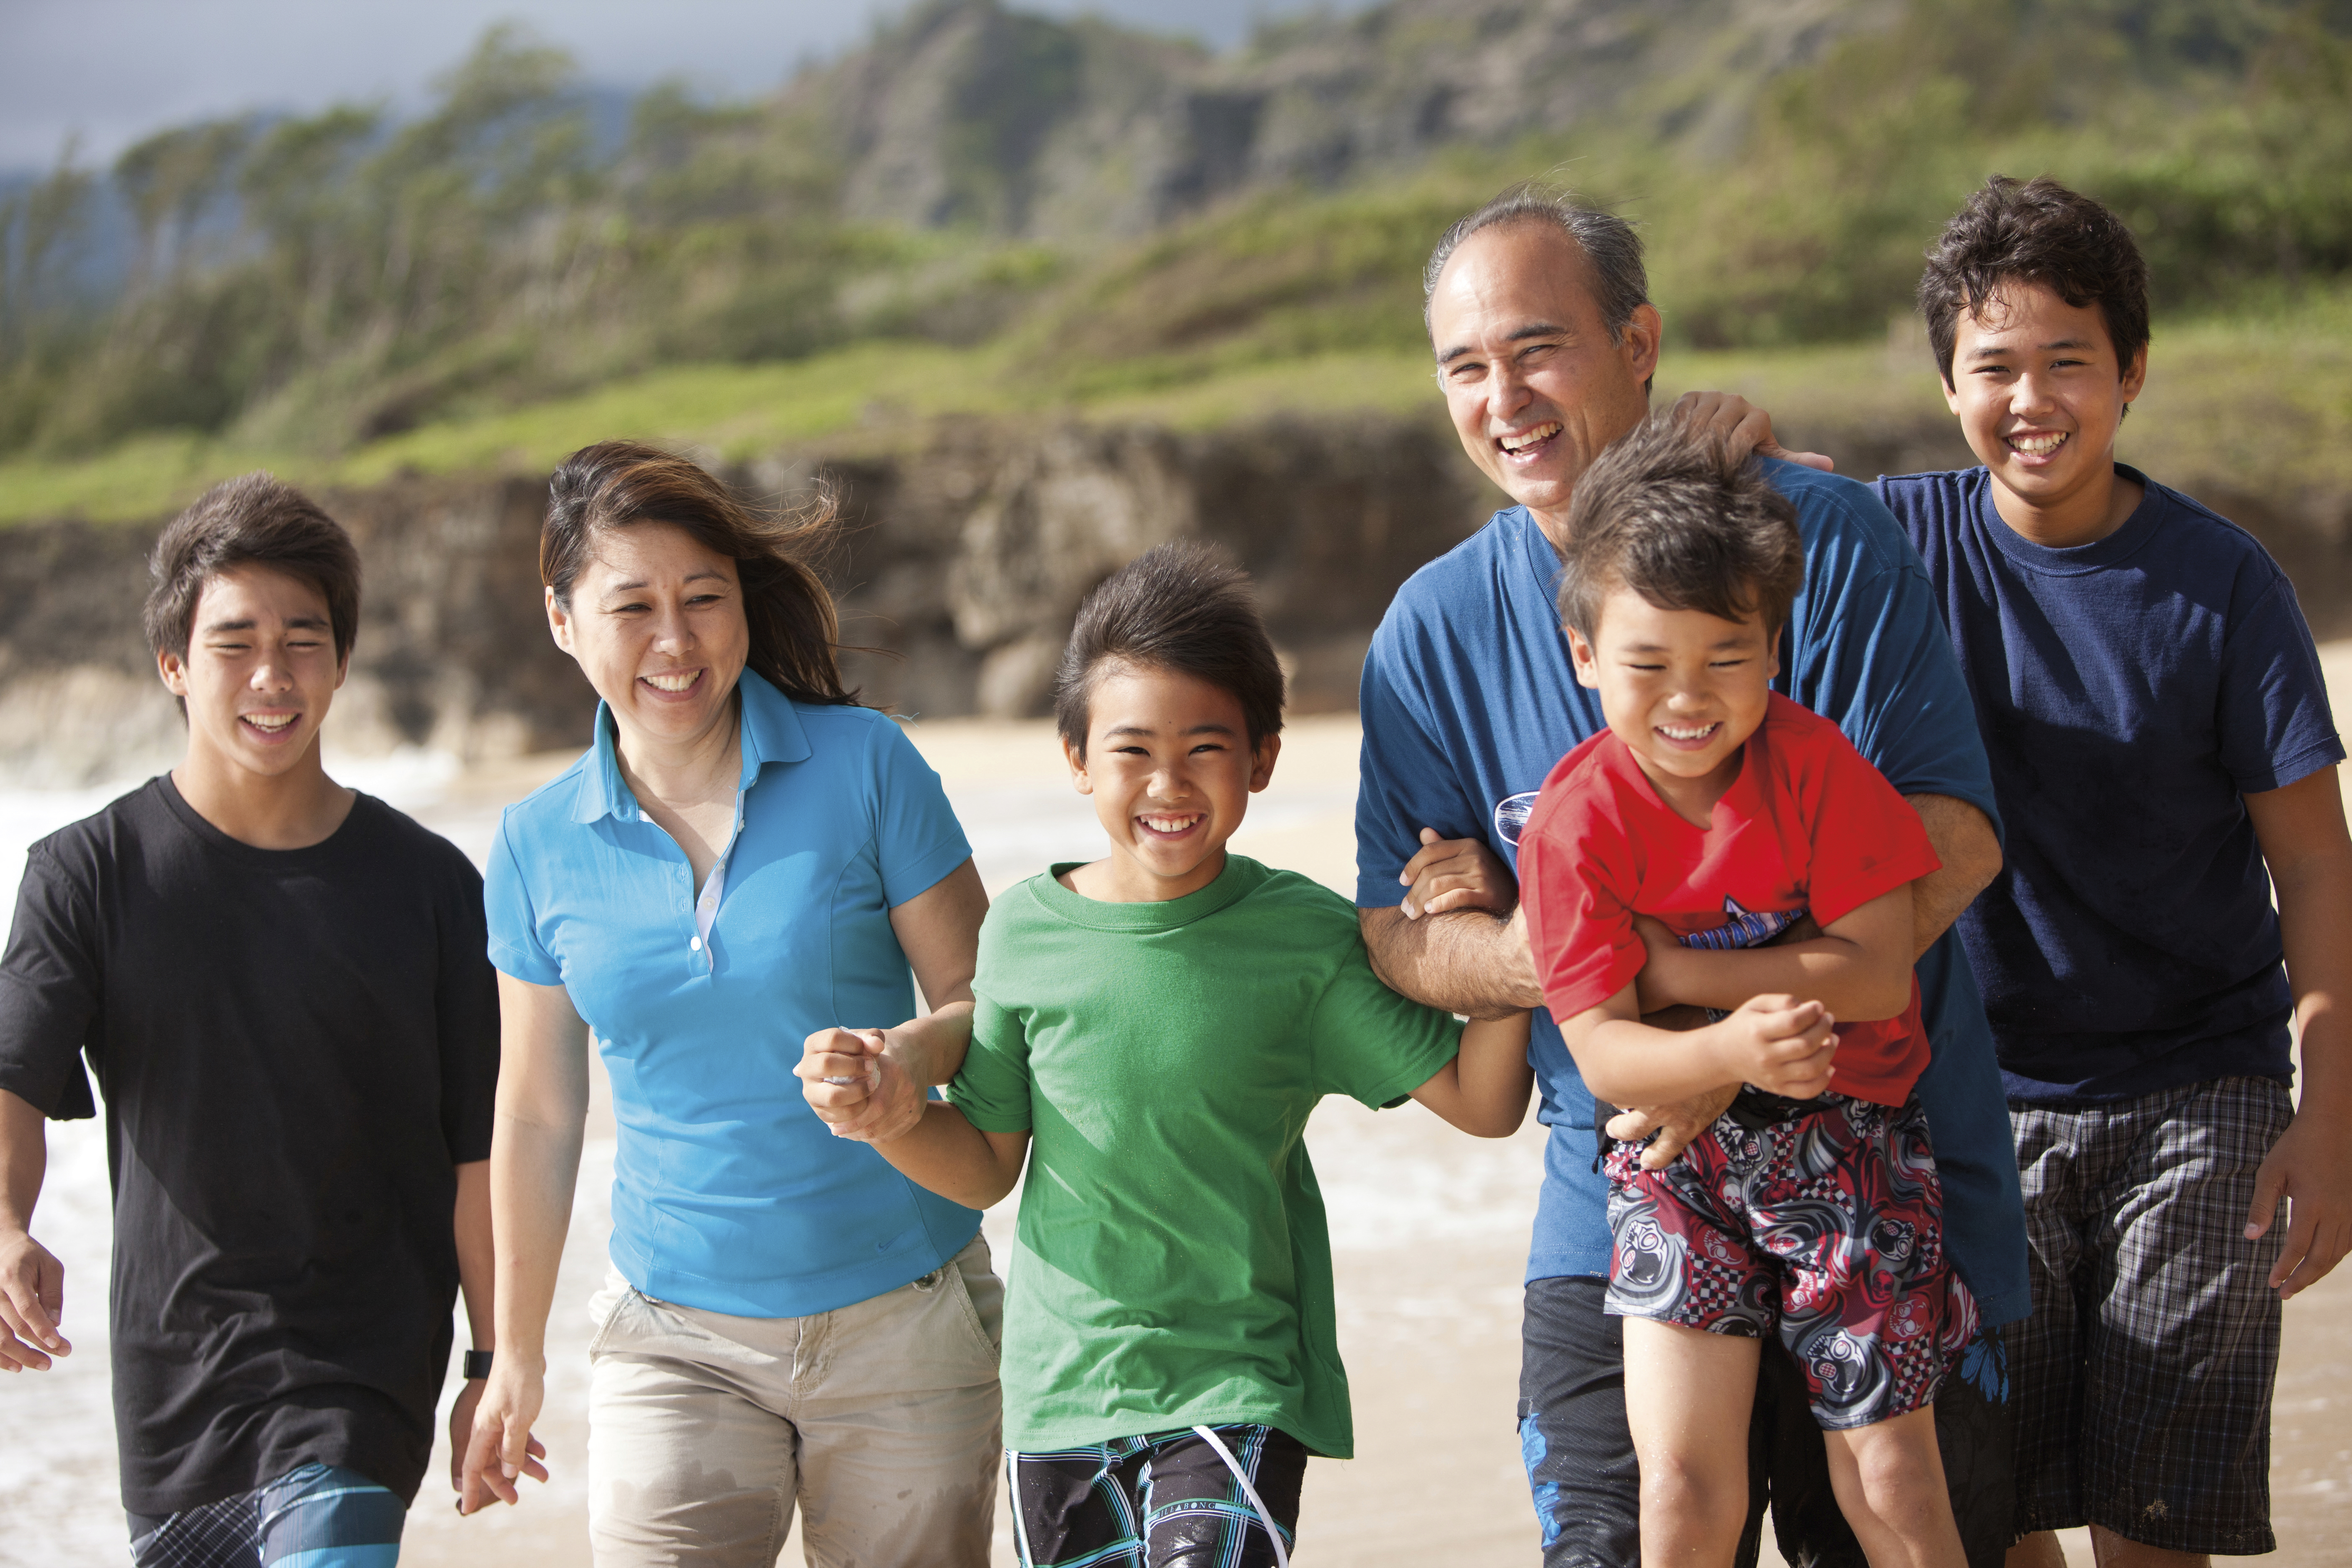 A family in Hawaii walks along the beach together.